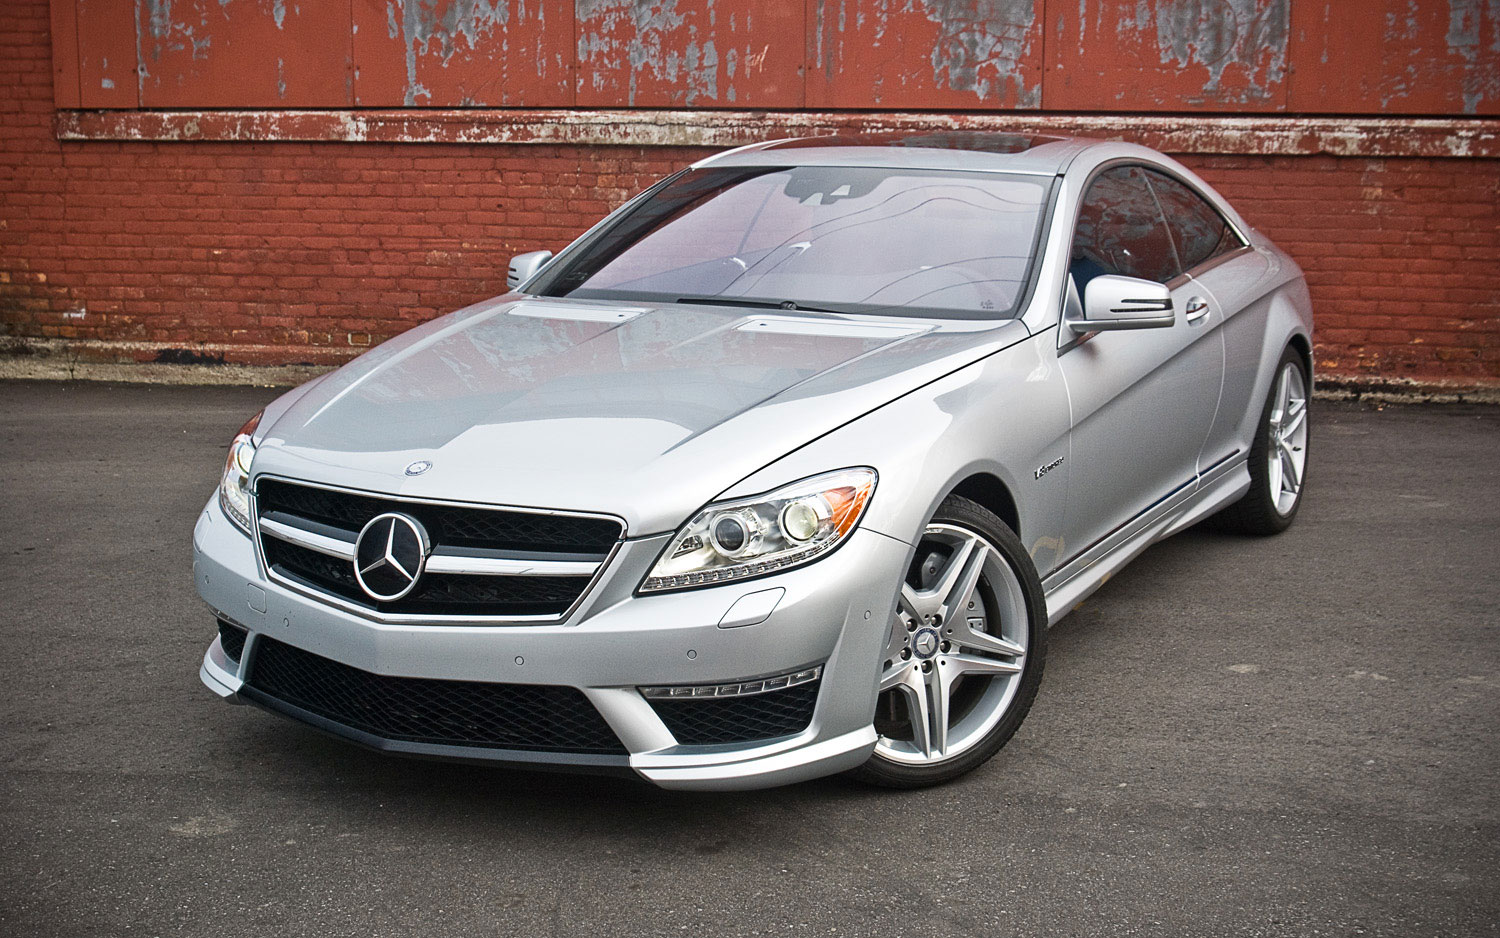 2011 mercedes benz cl63 amg 25 advertisement to skip 1 25